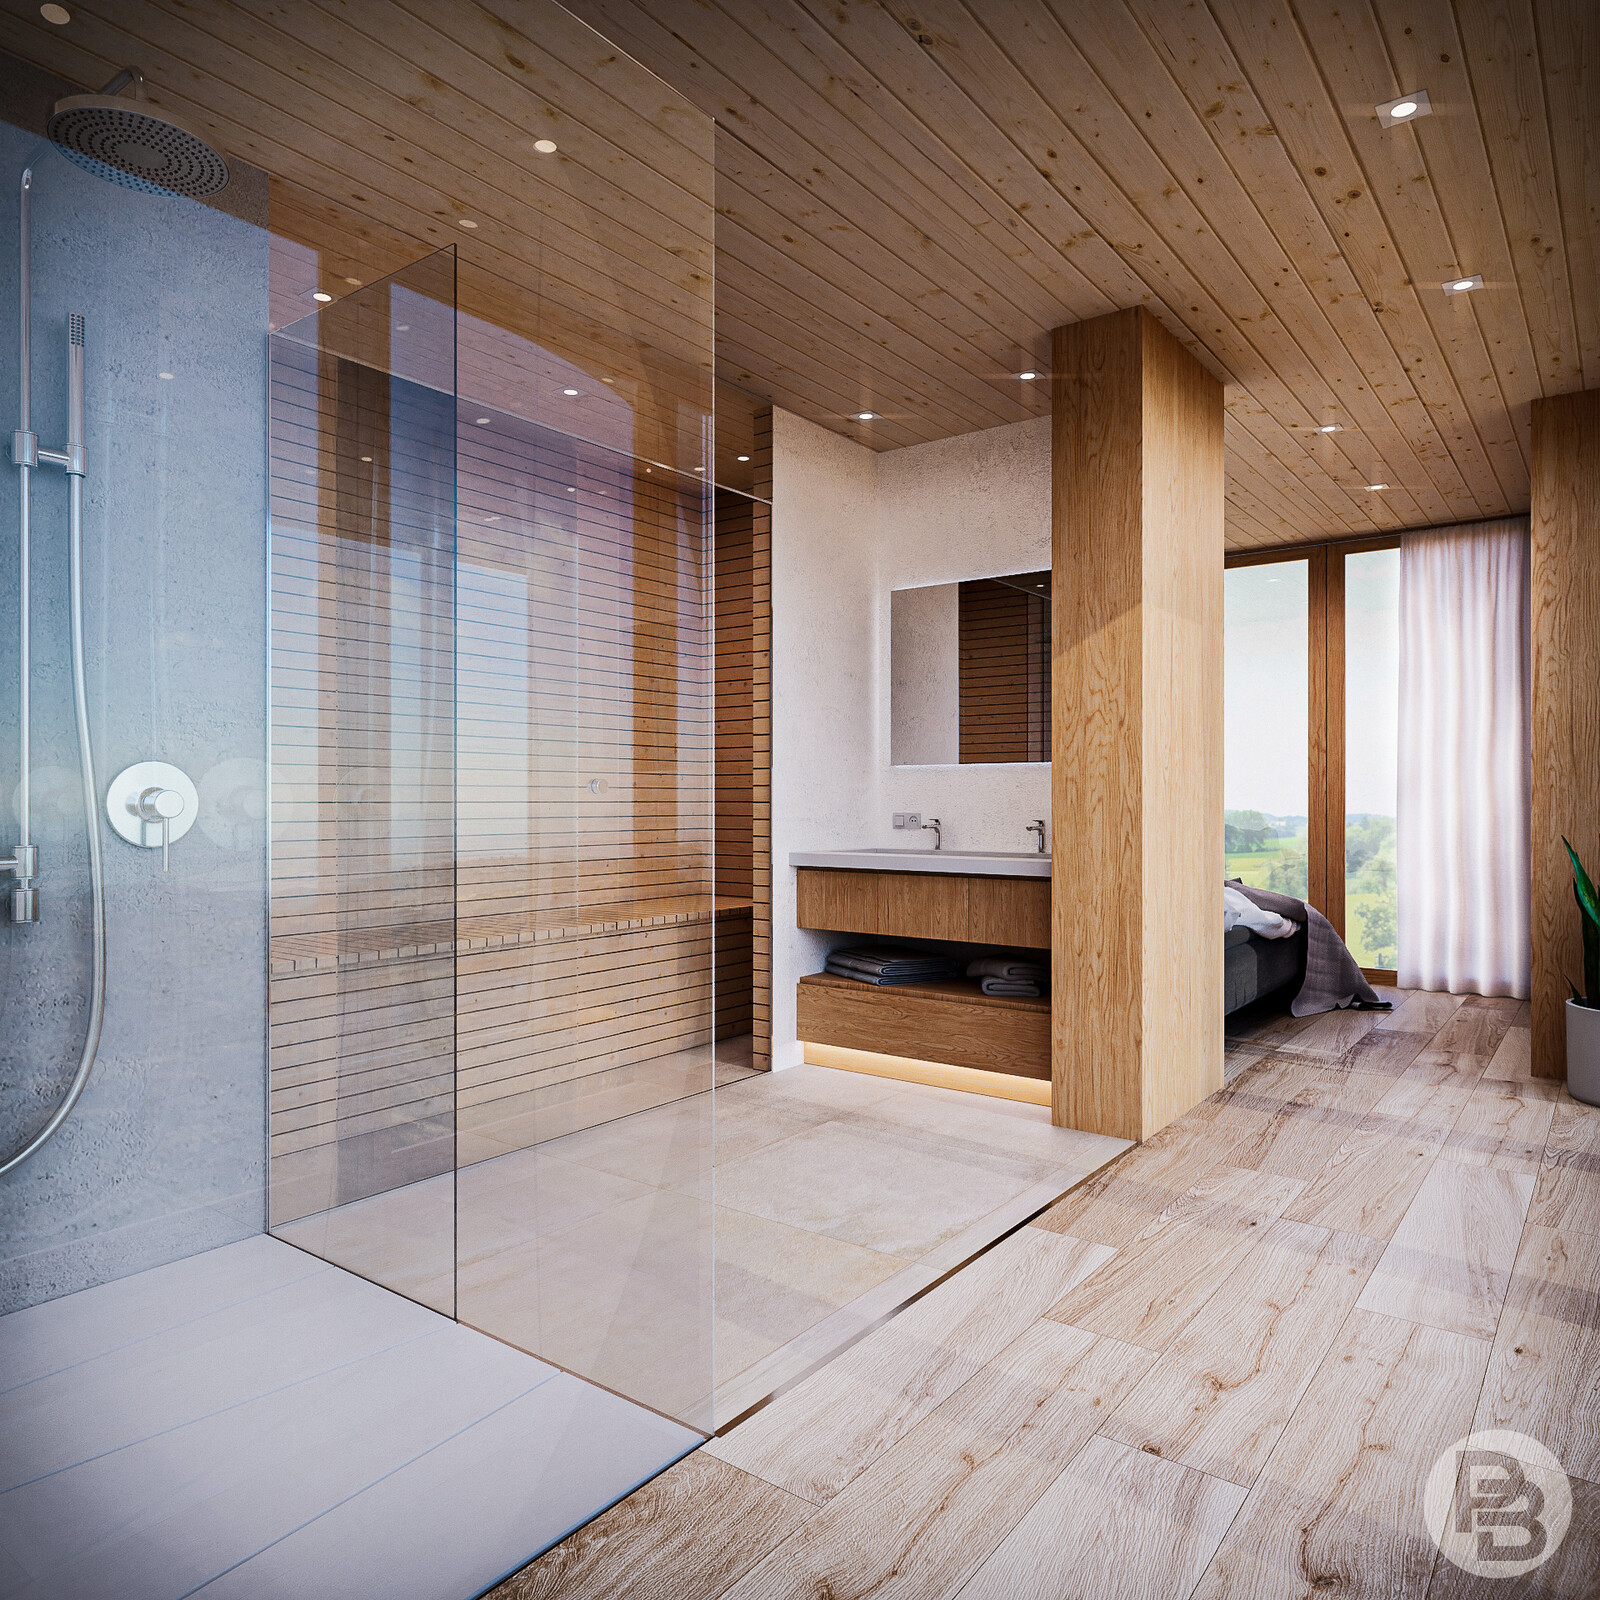 Bathroom with sauna